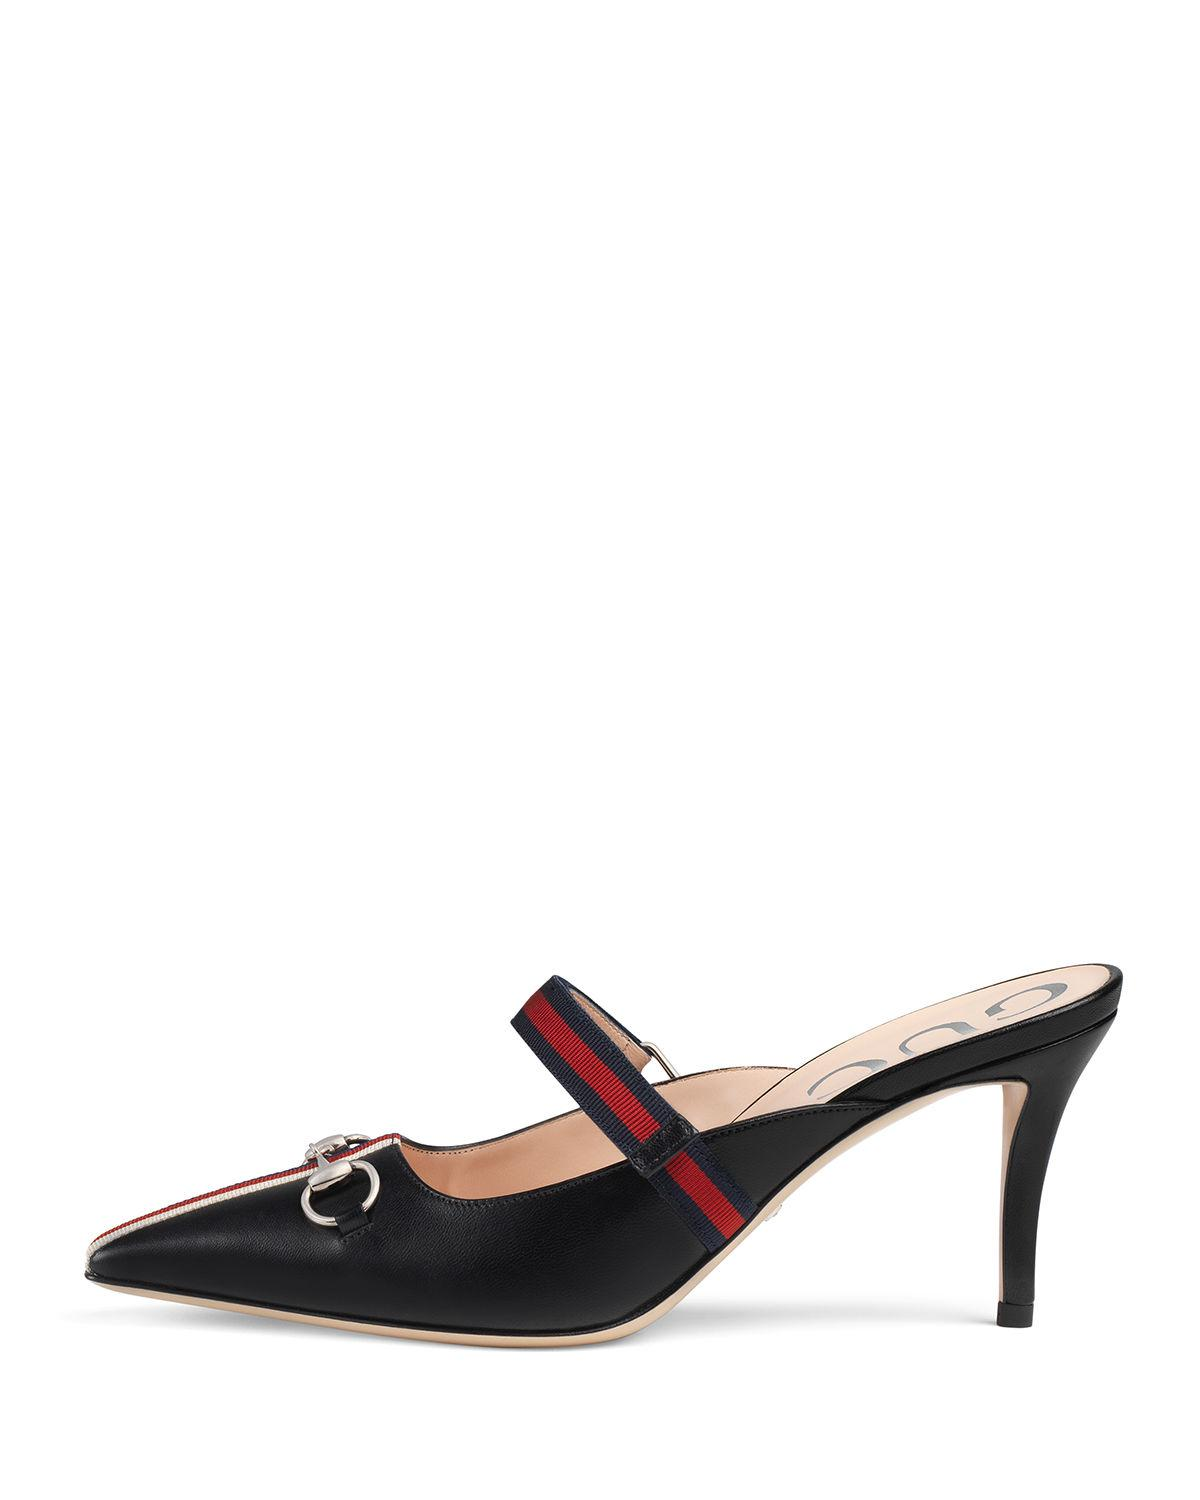 91410be830 Lyst - Gucci Horsebit Leather Slide Mules in White